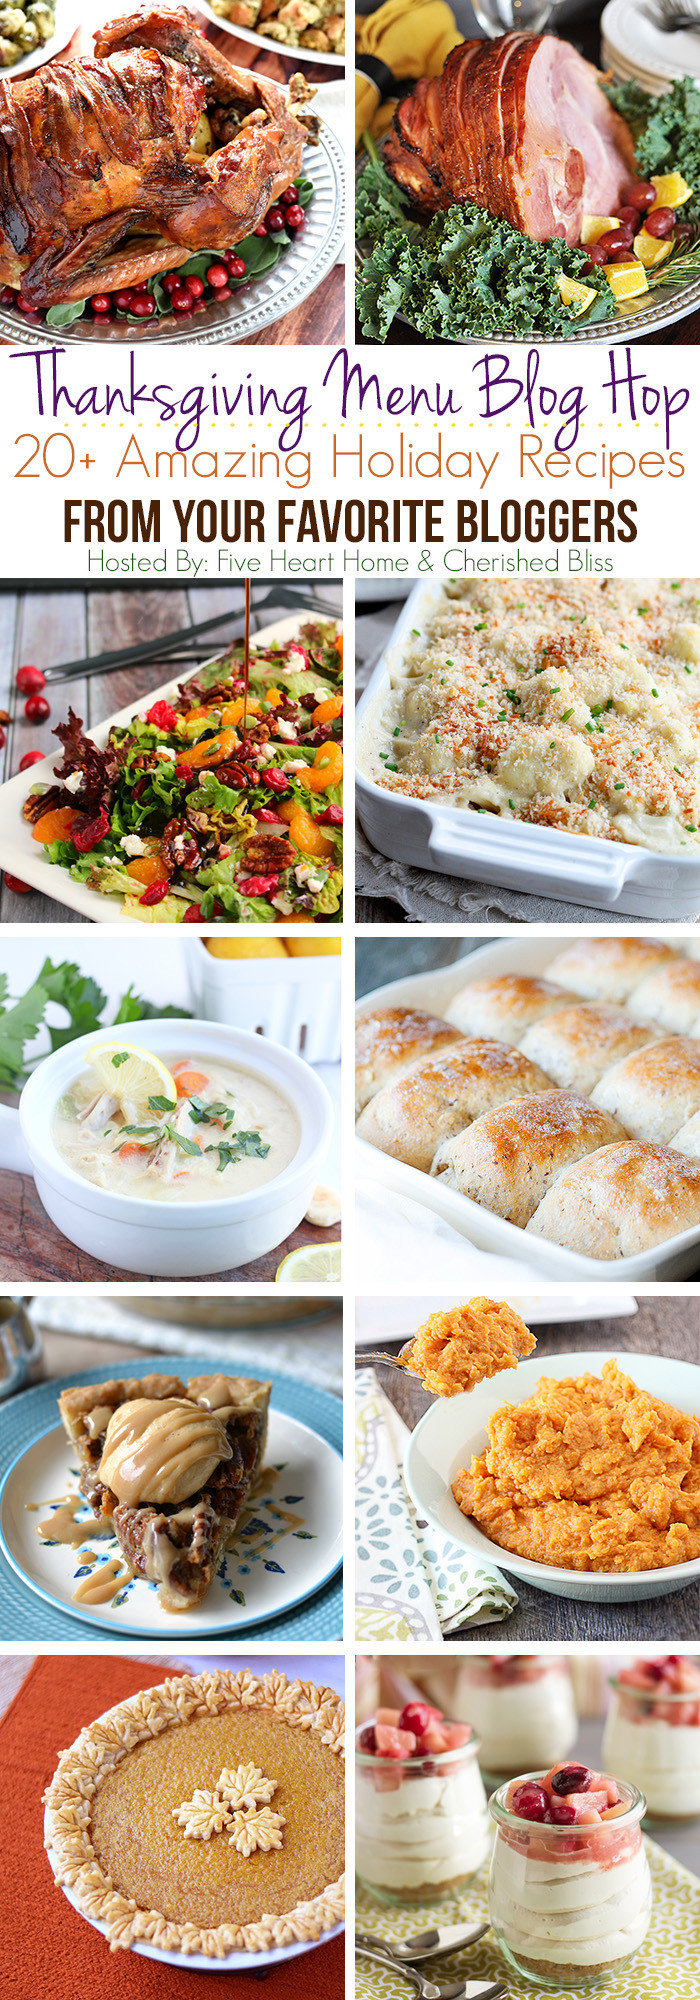 Turkey Recipes Thanksgiving  harvest grain dinner rolls and a thanksgiving blog hop